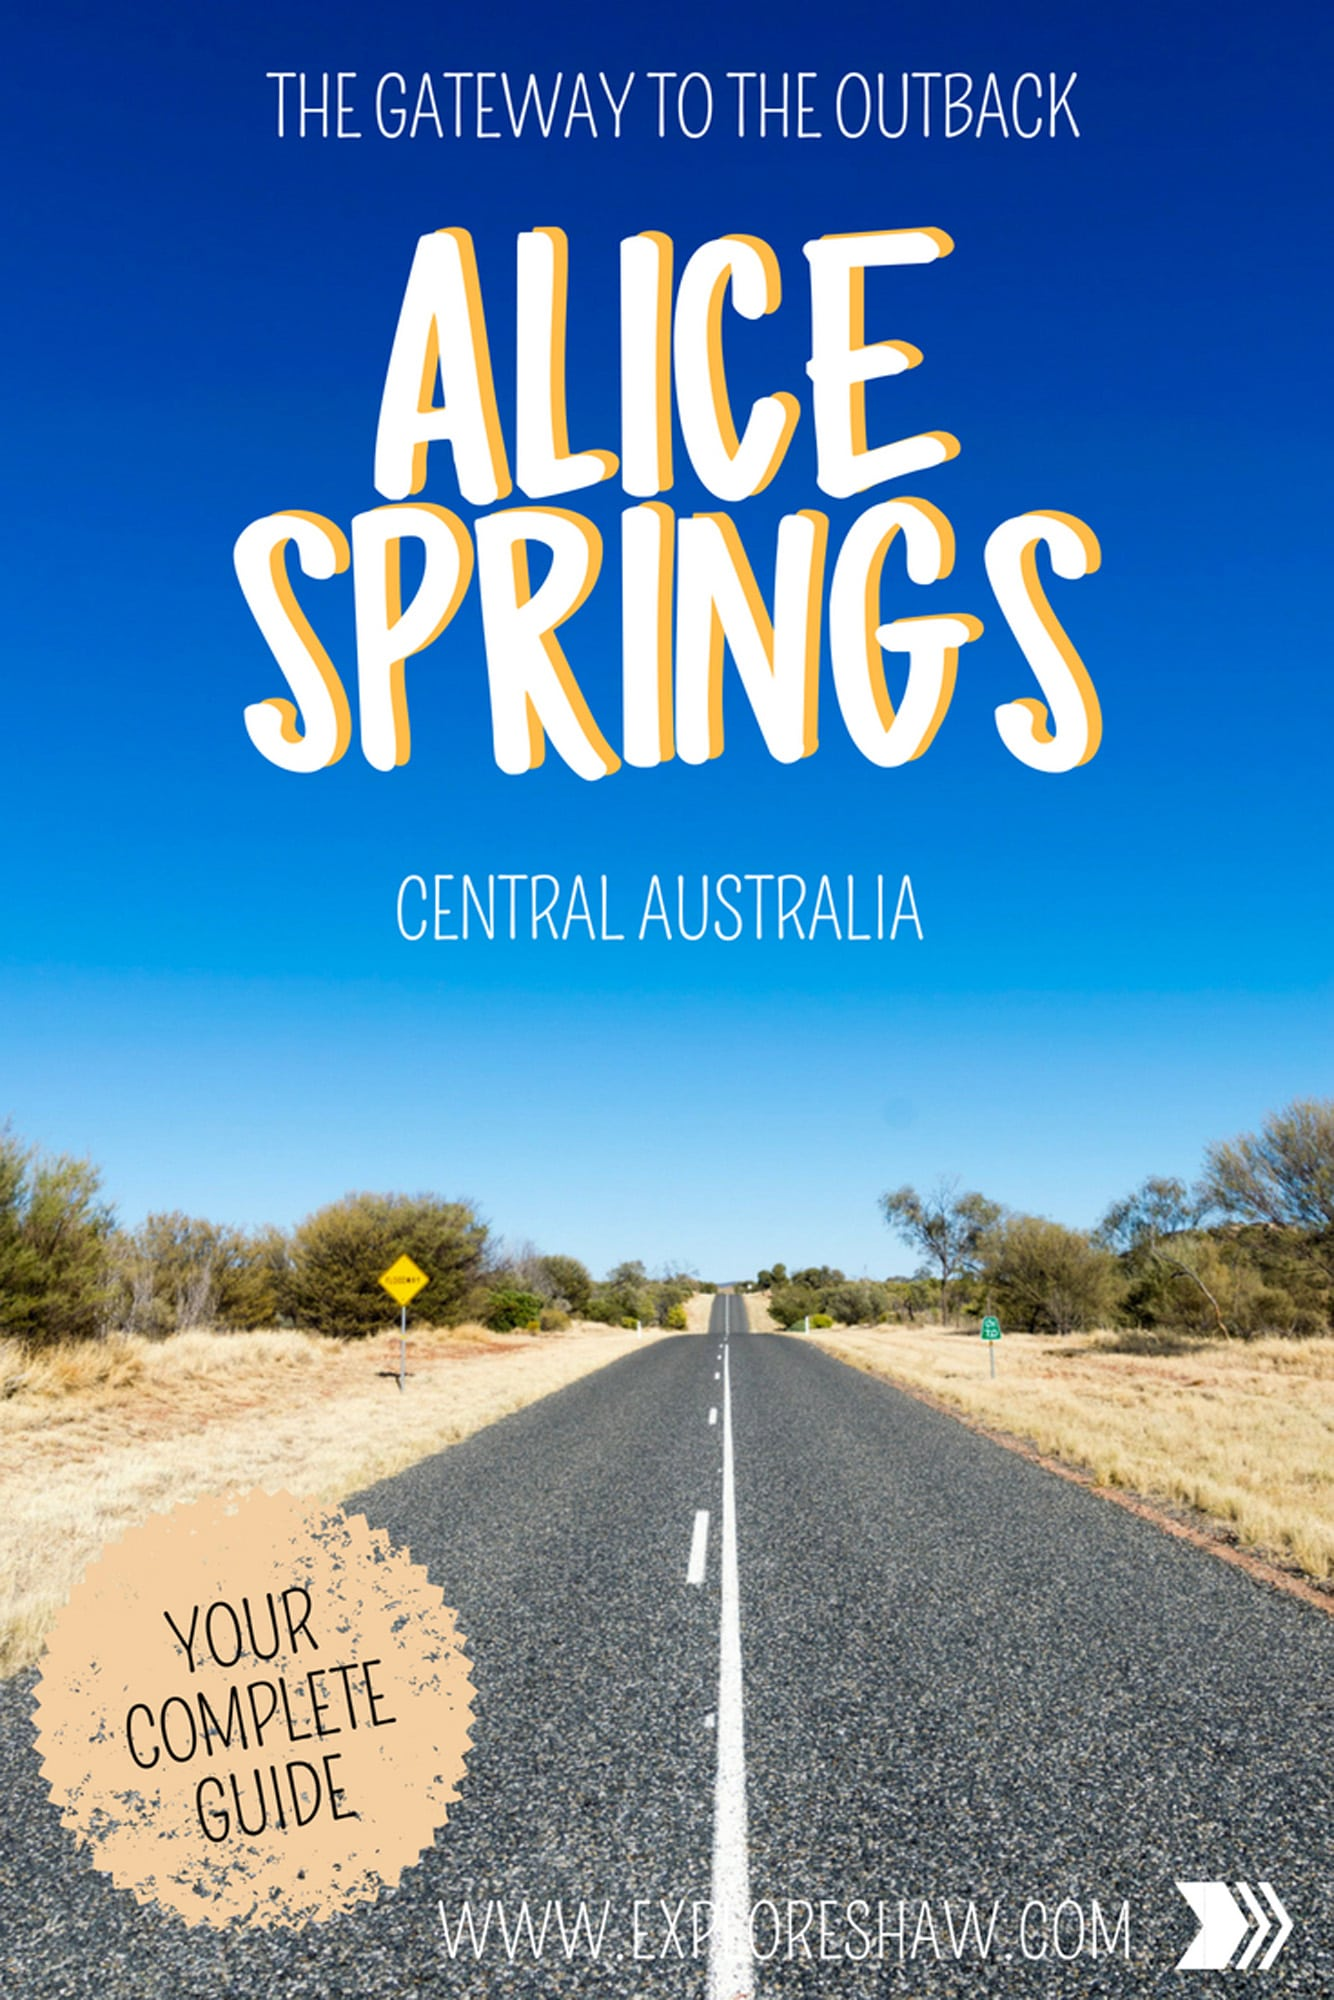 the gateway to the outback - alice springs